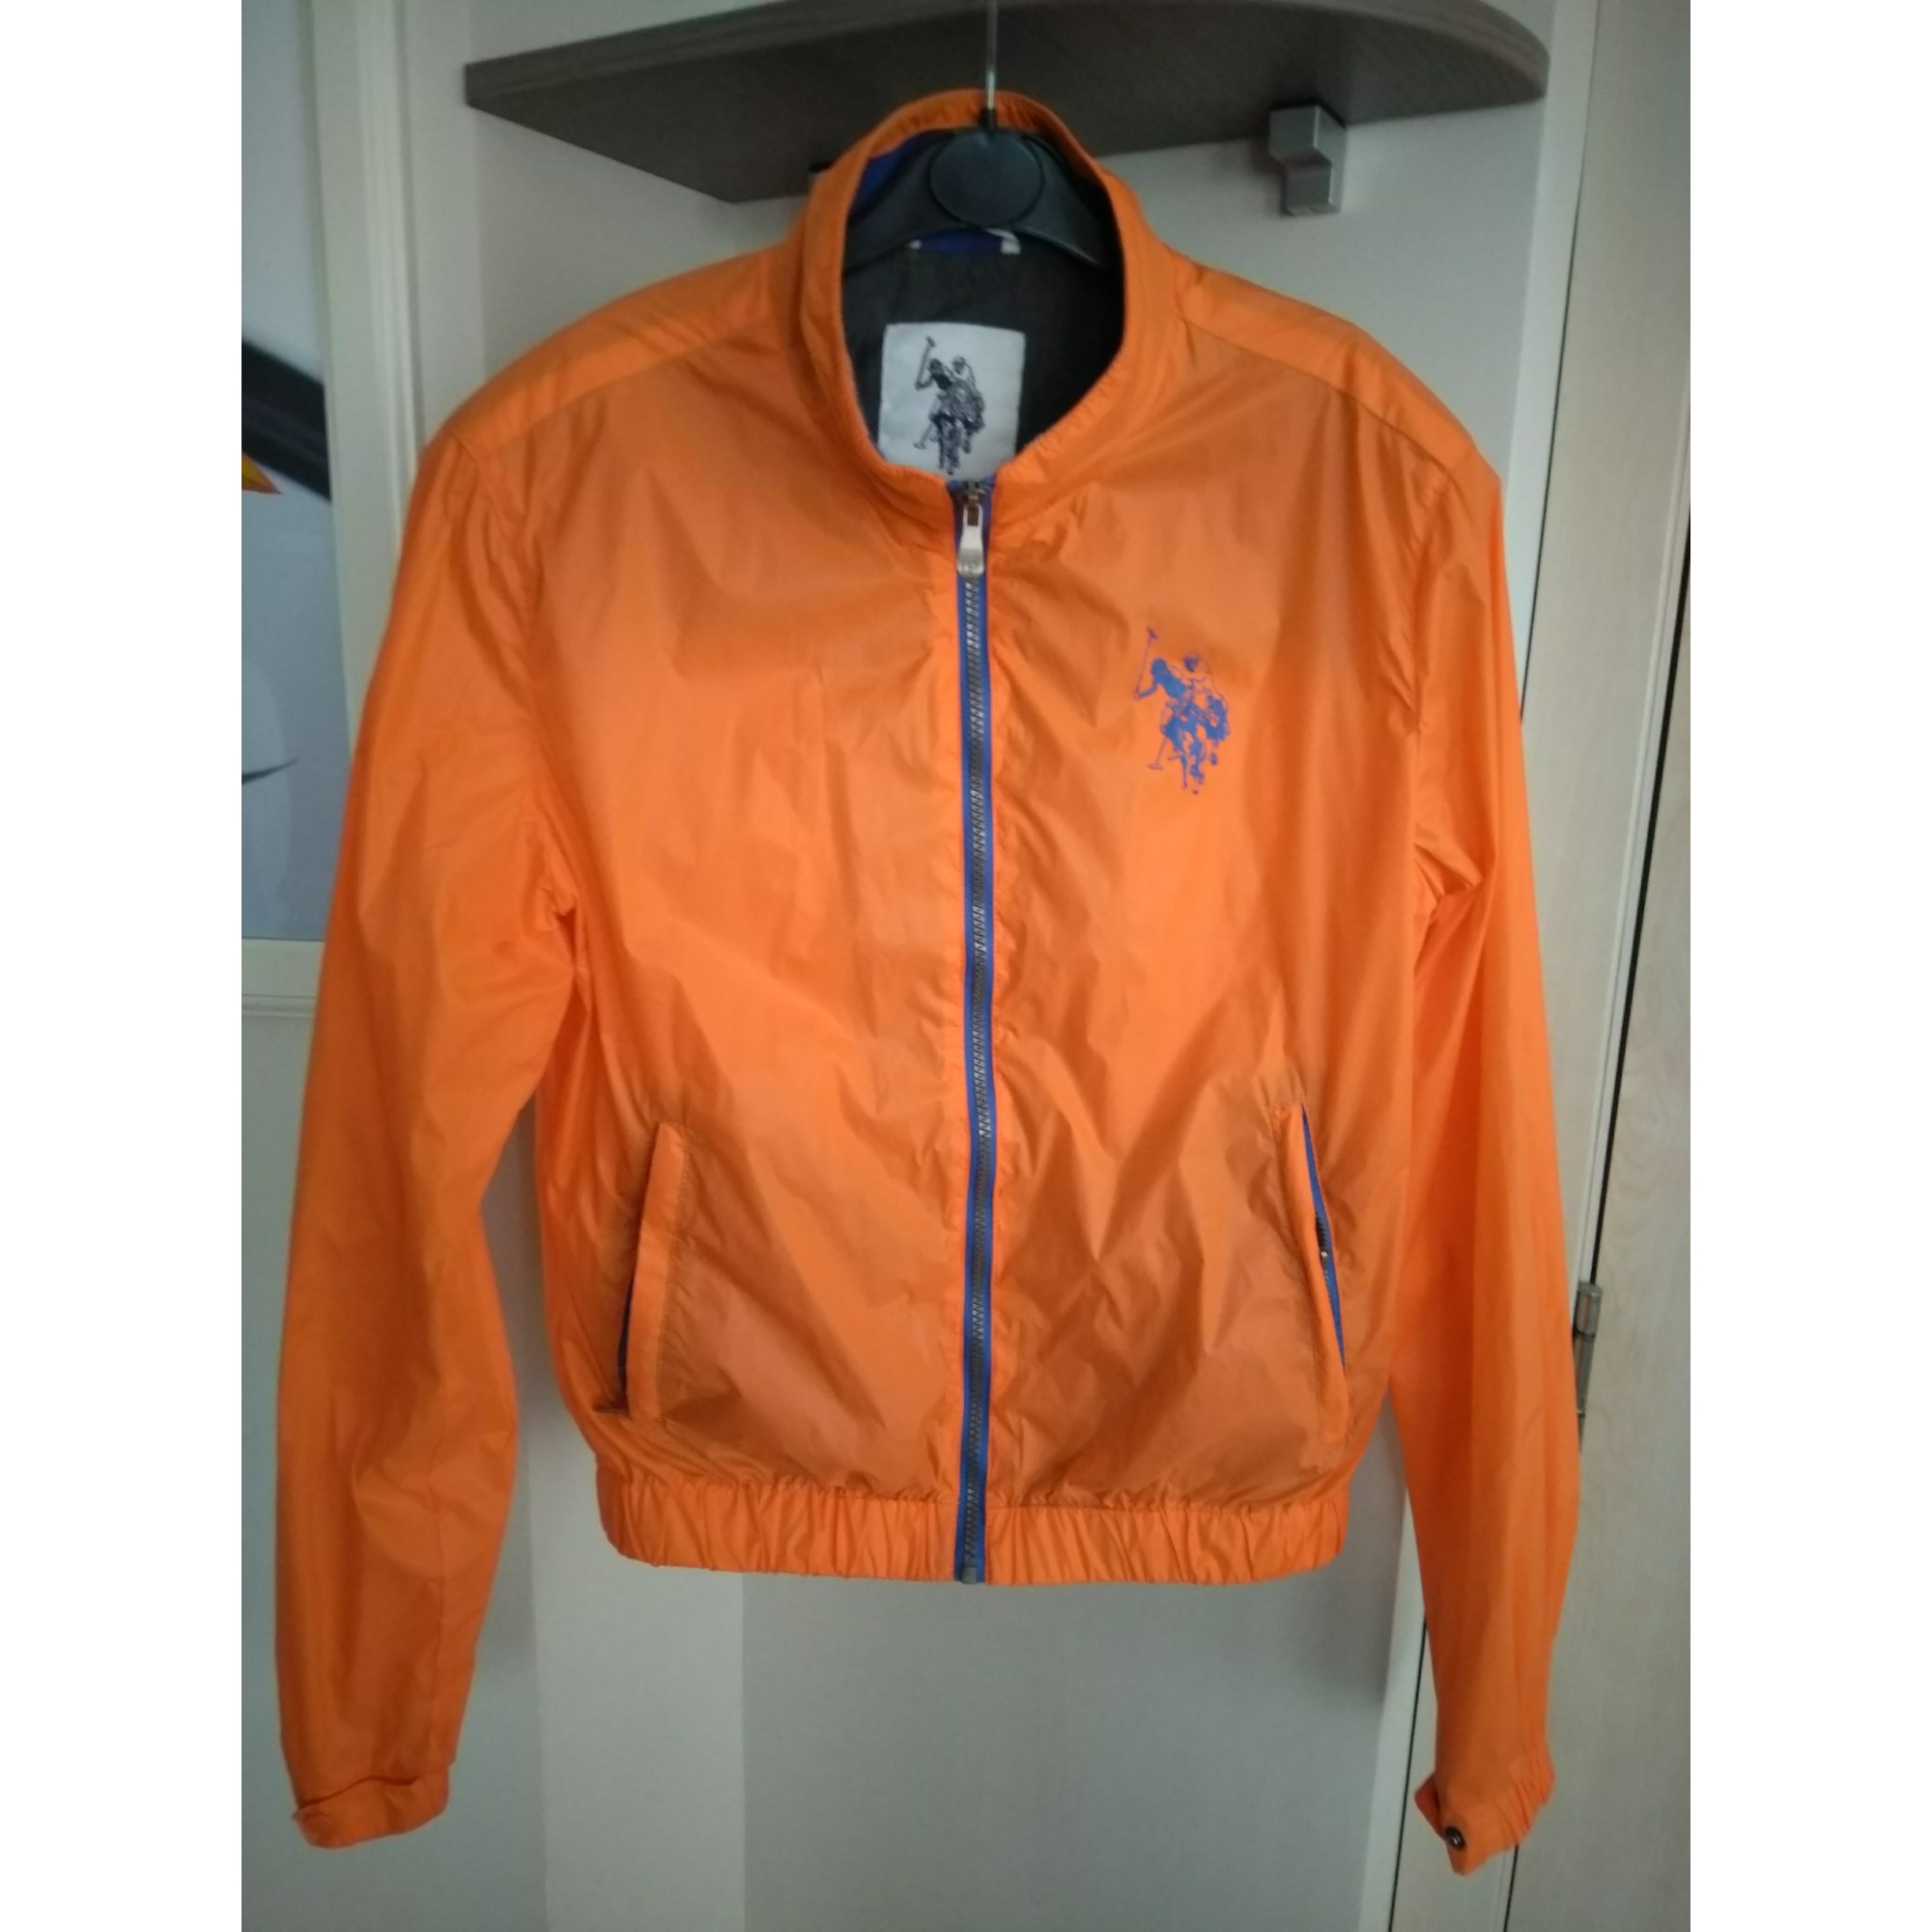 Imperméable, trench US POLO ASSN Orange